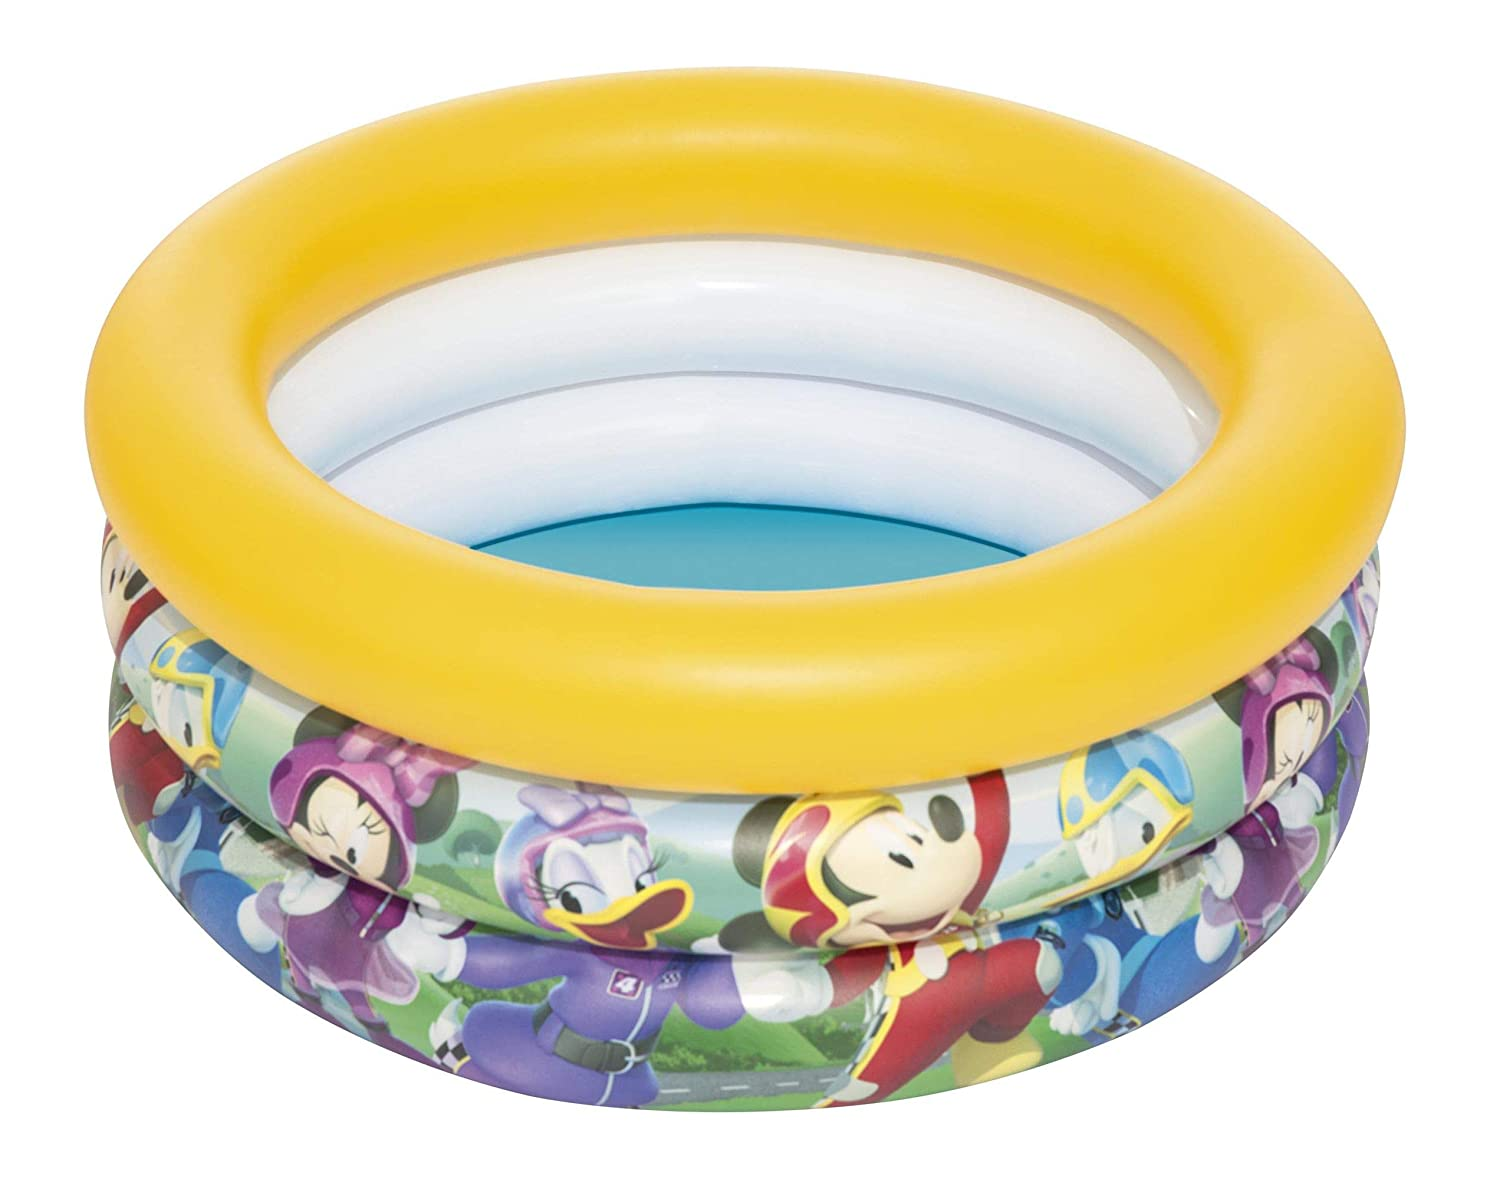 bestway-mickey-mouse-baby-pool-30l-&ndash-91018